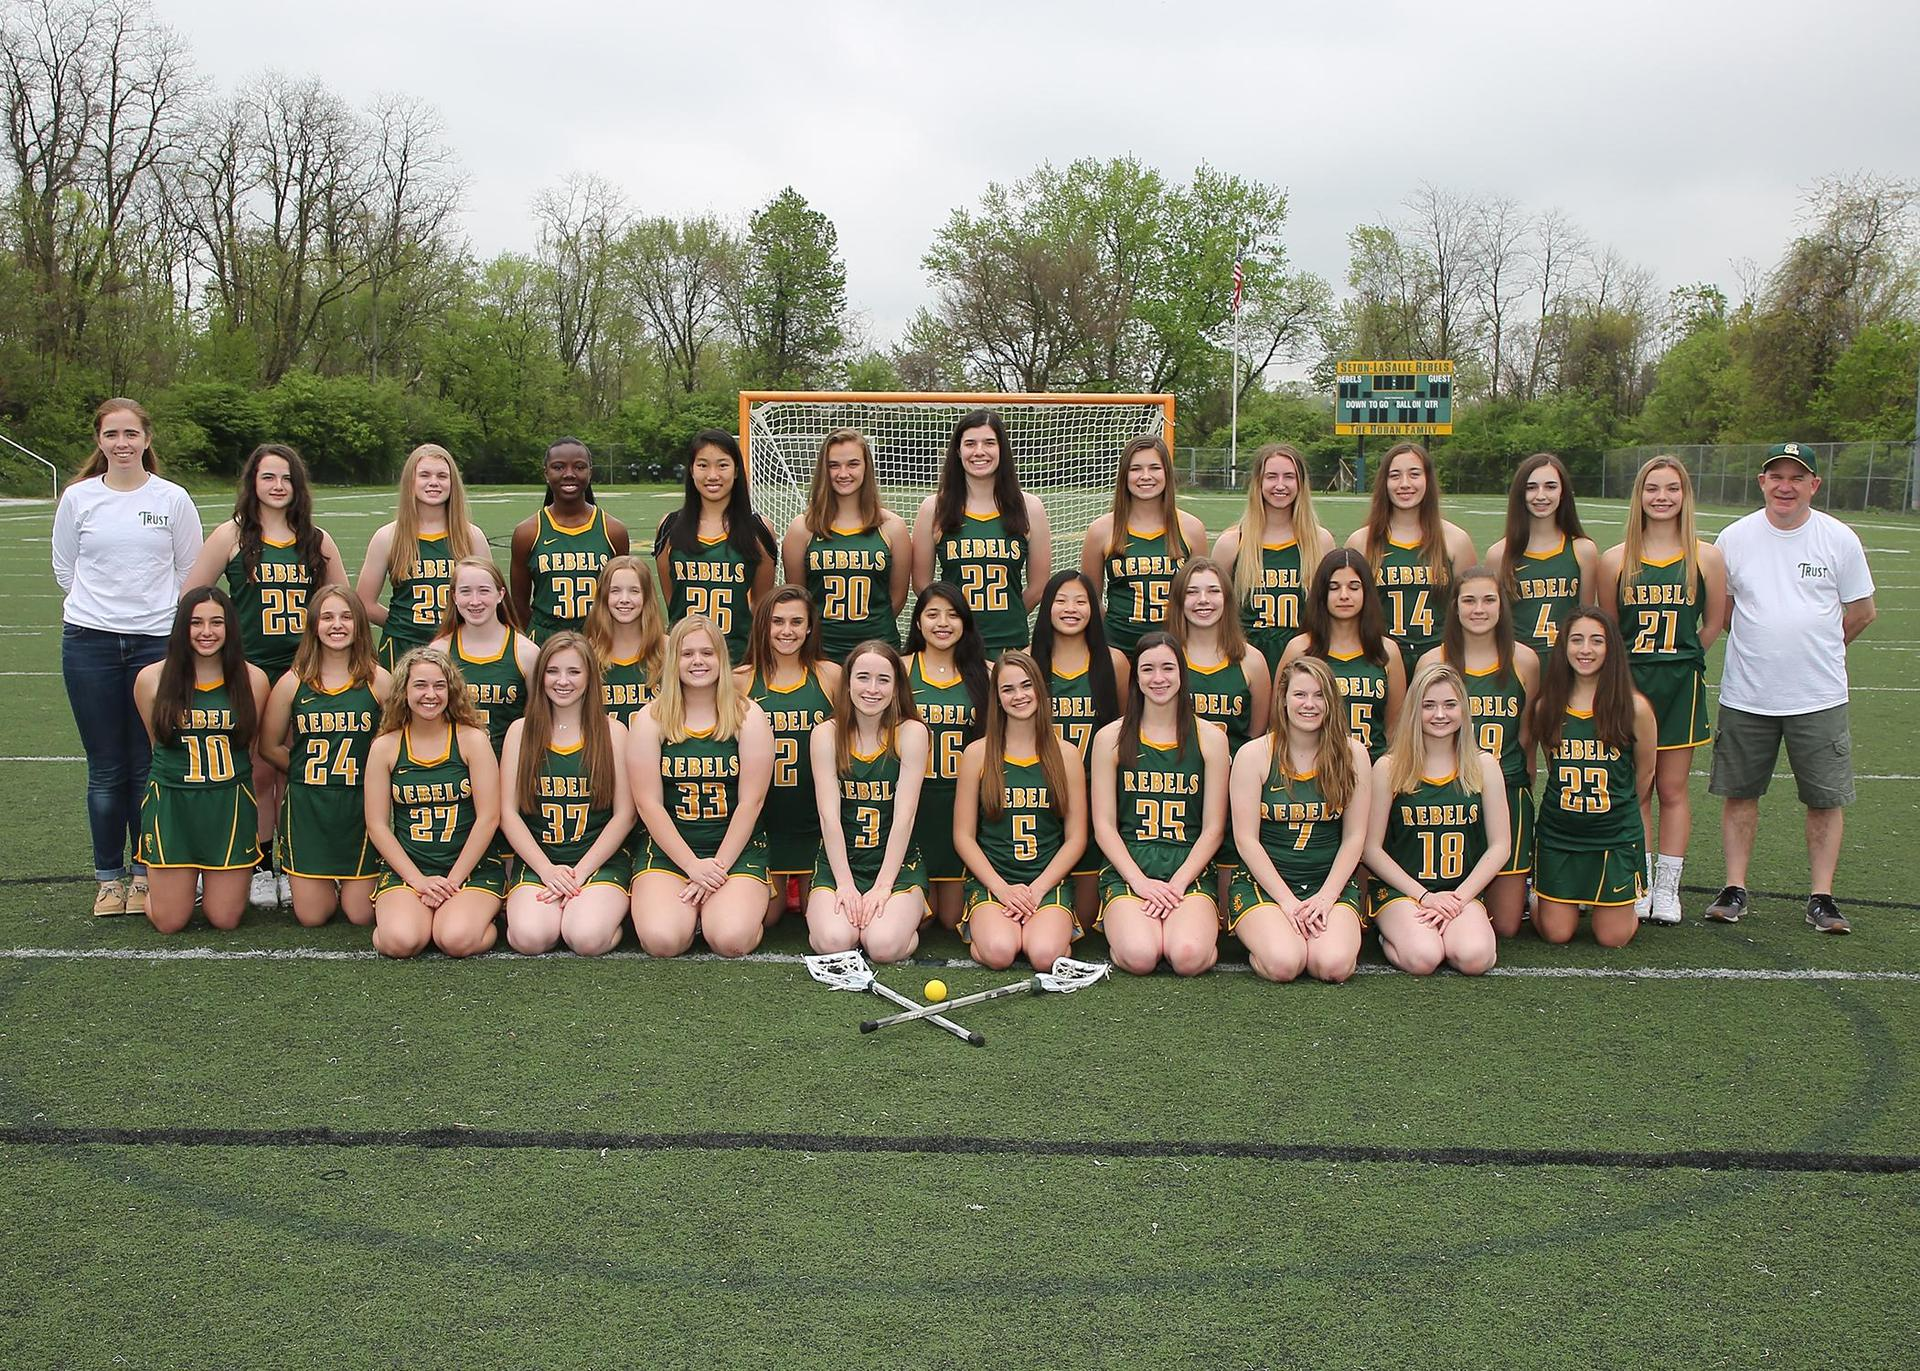 Girls Lacrosse team photo